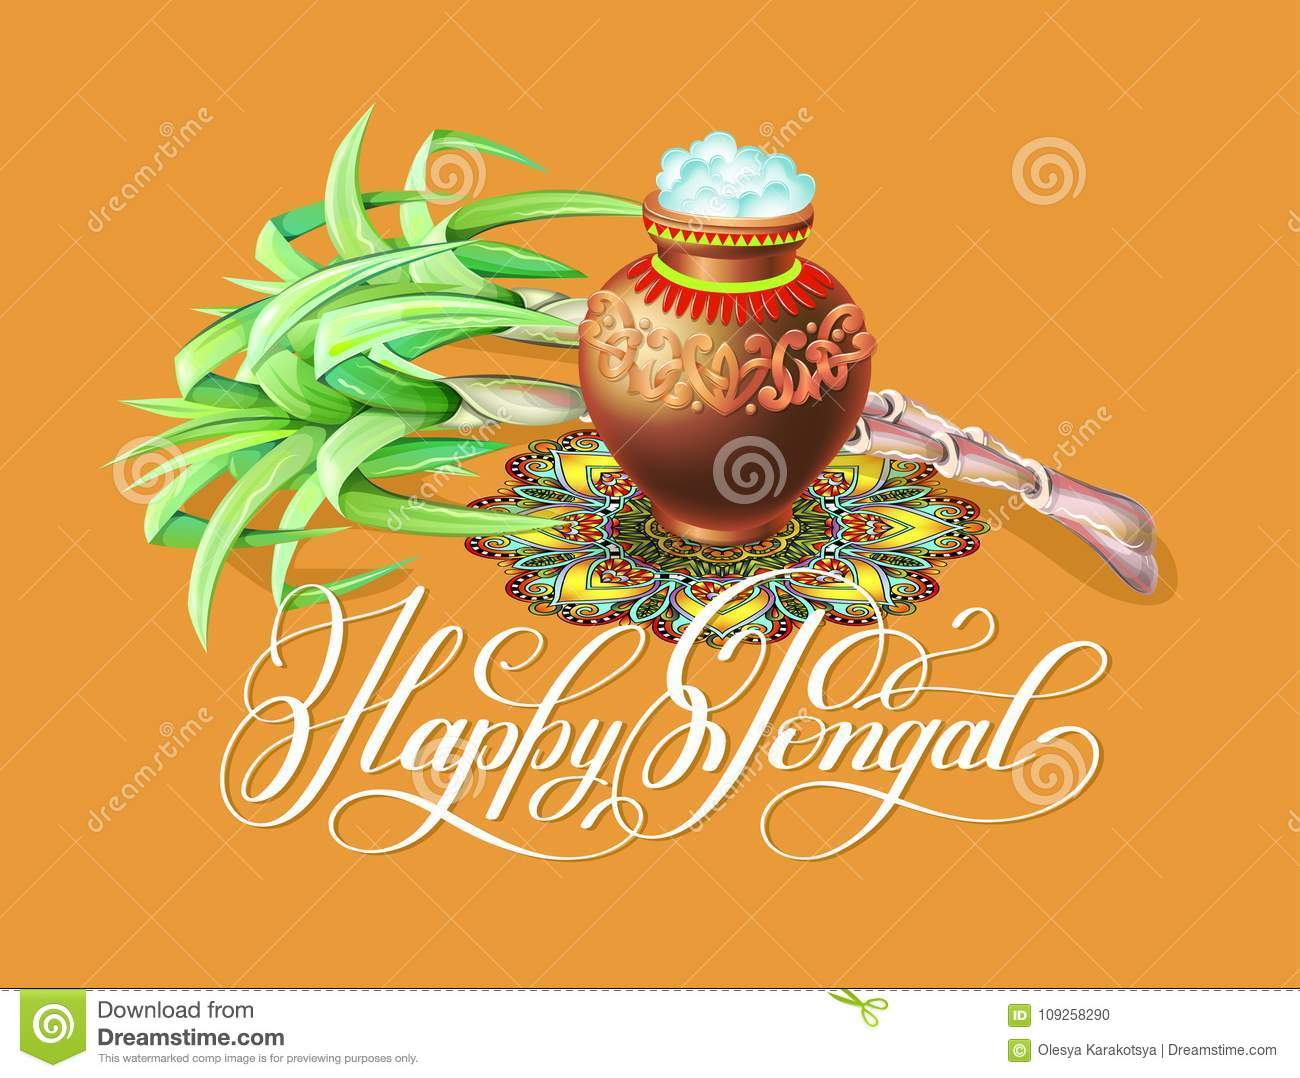 Happy Pongal Greeting Card To South Indian Winter Holiday Design